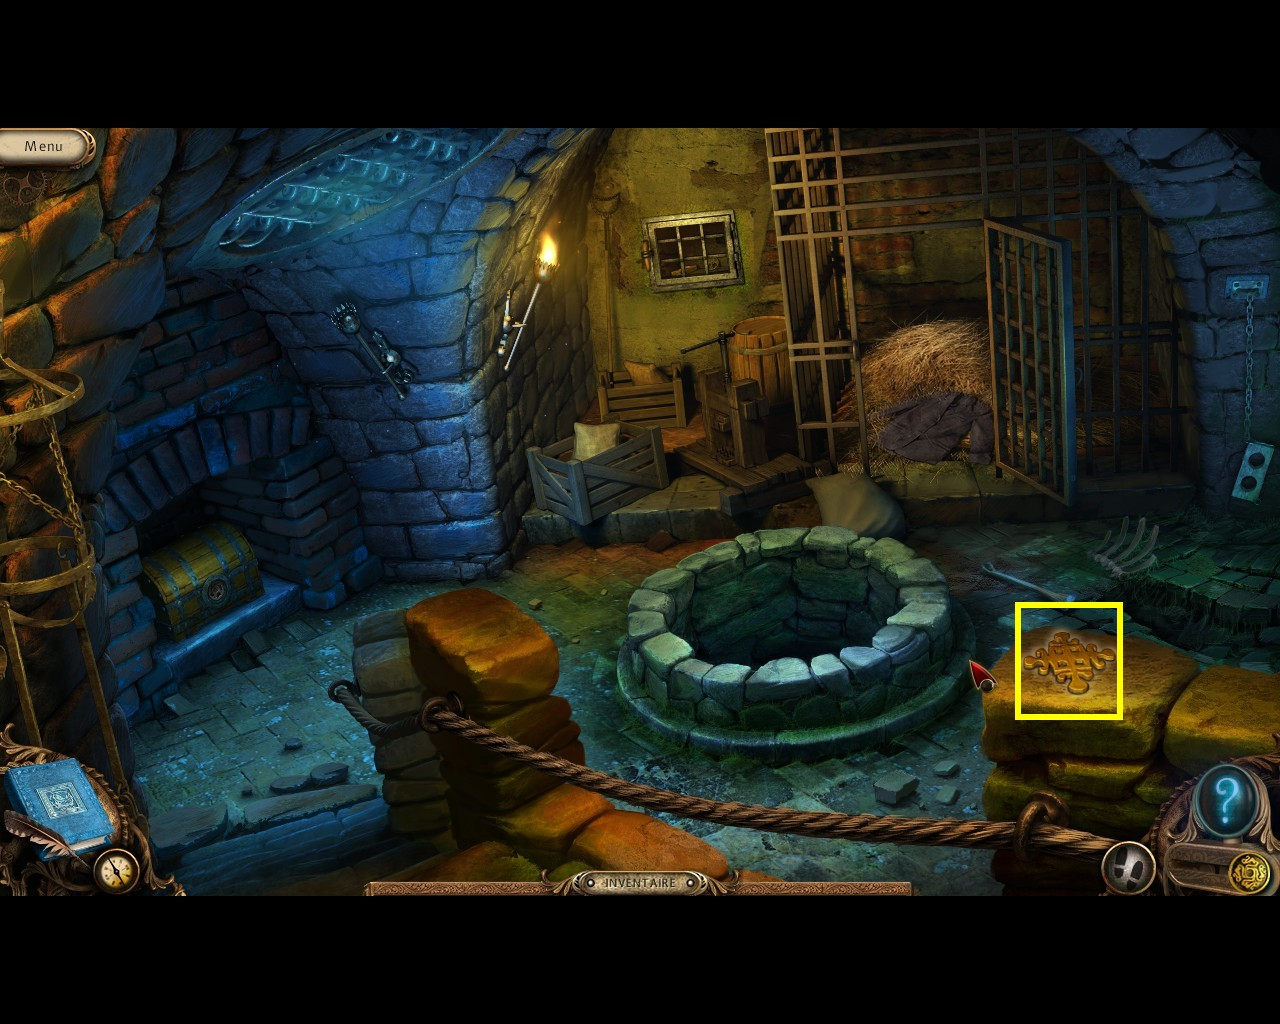 Steam community guide symbols location guide while this symbol is inside the garage outside the mansion i opened that room at that point of the game it is possible that it can be accessed at an buycottarizona Image collections